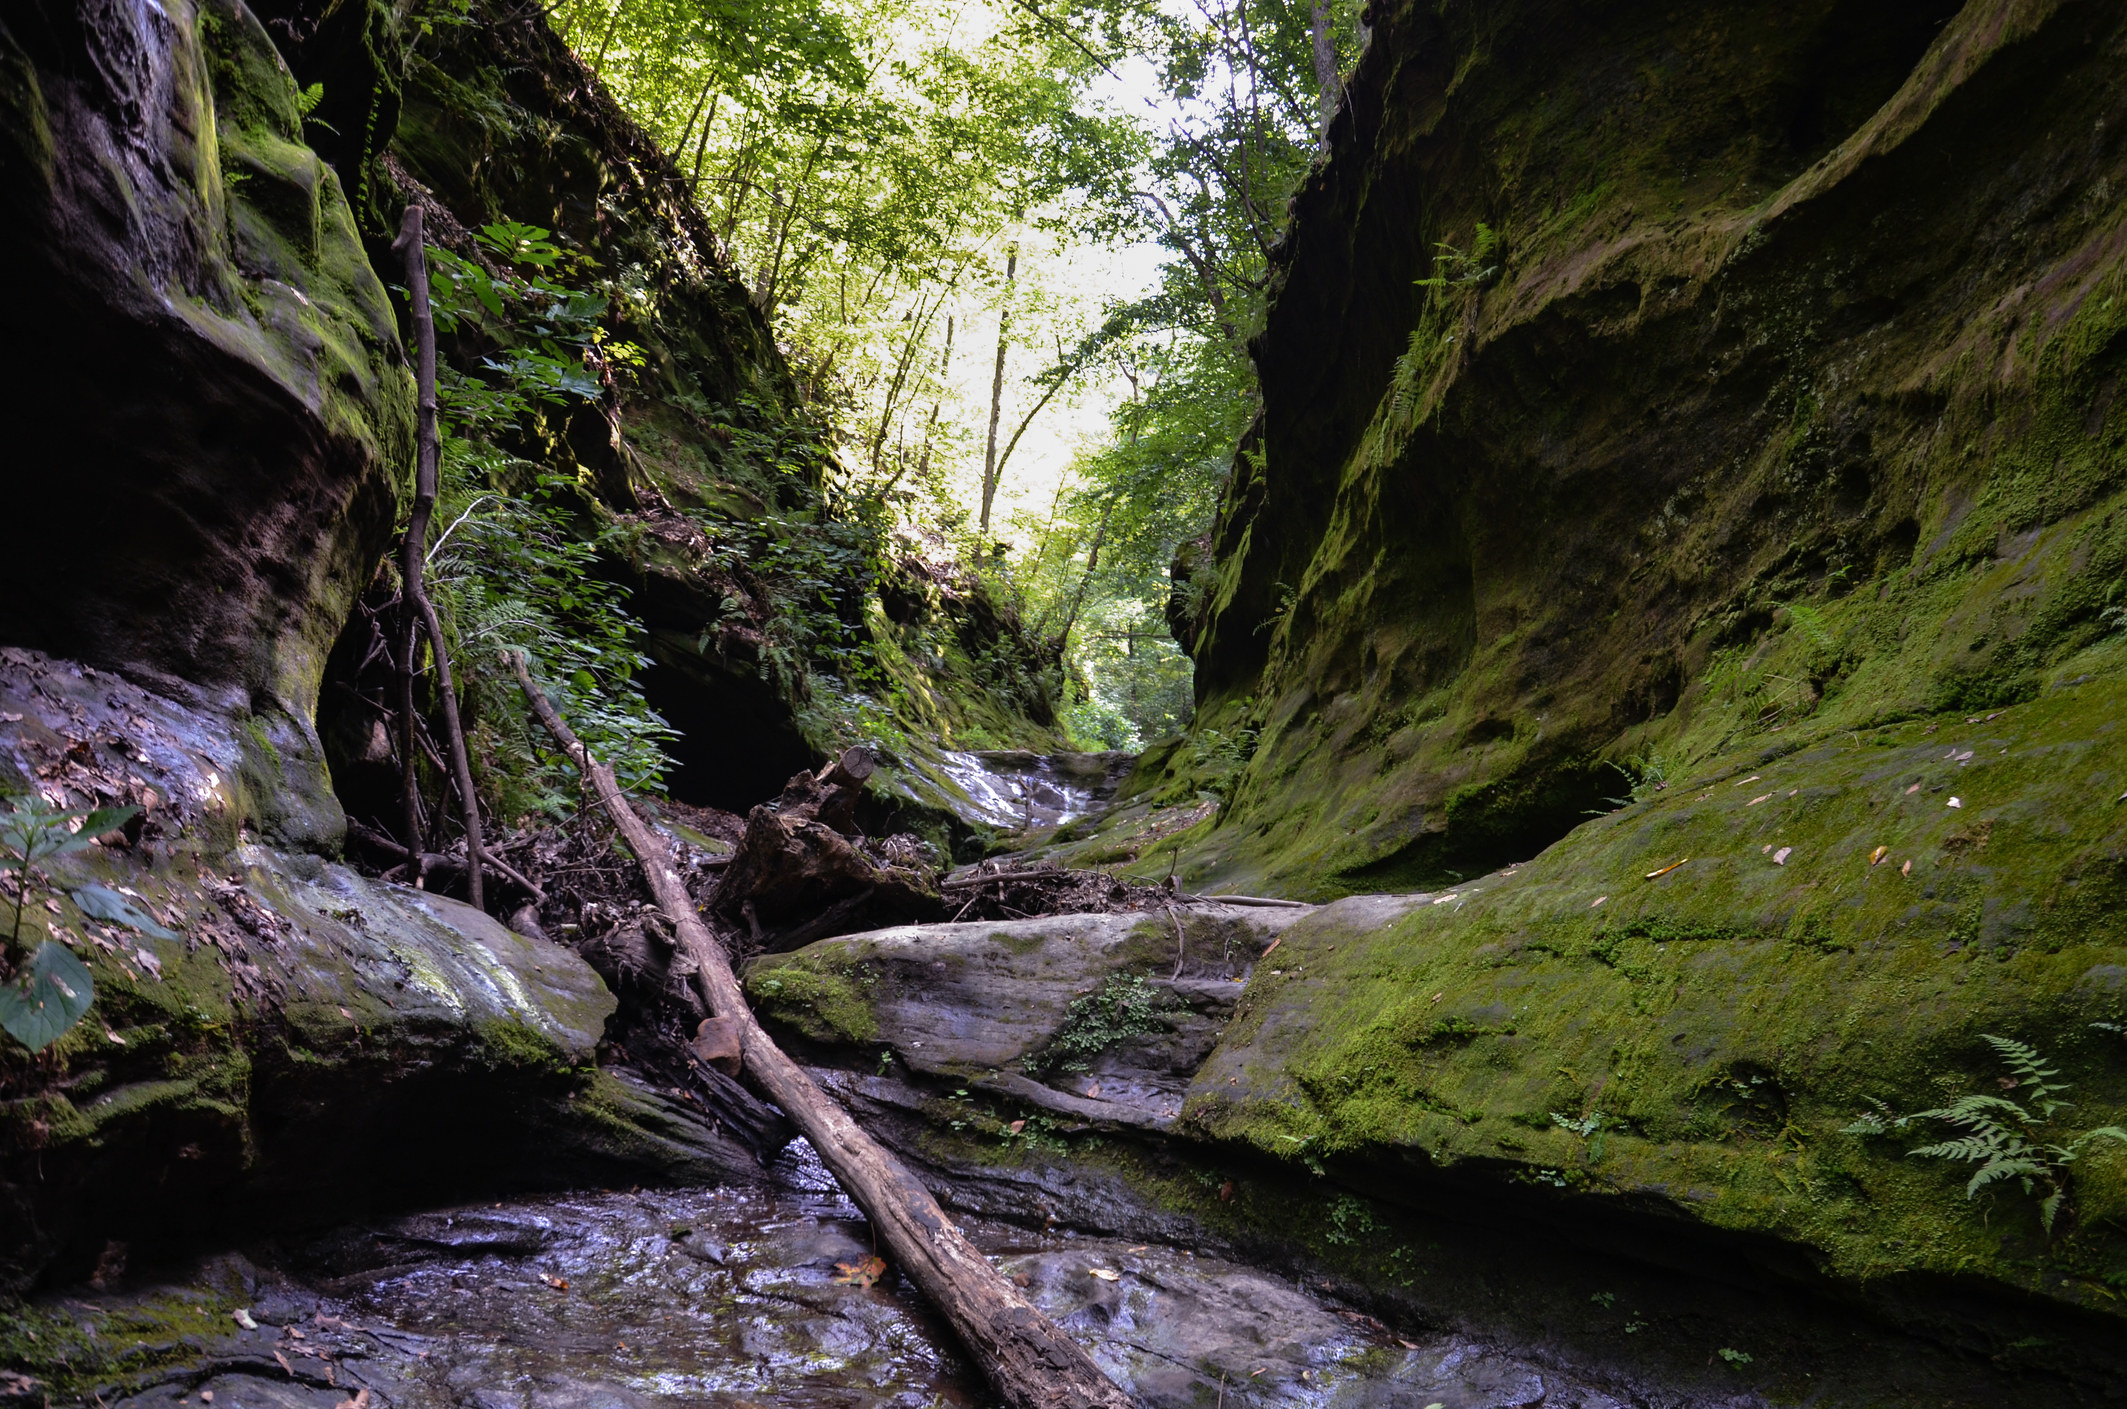 A rugged hiking trail through moss-covered rocks